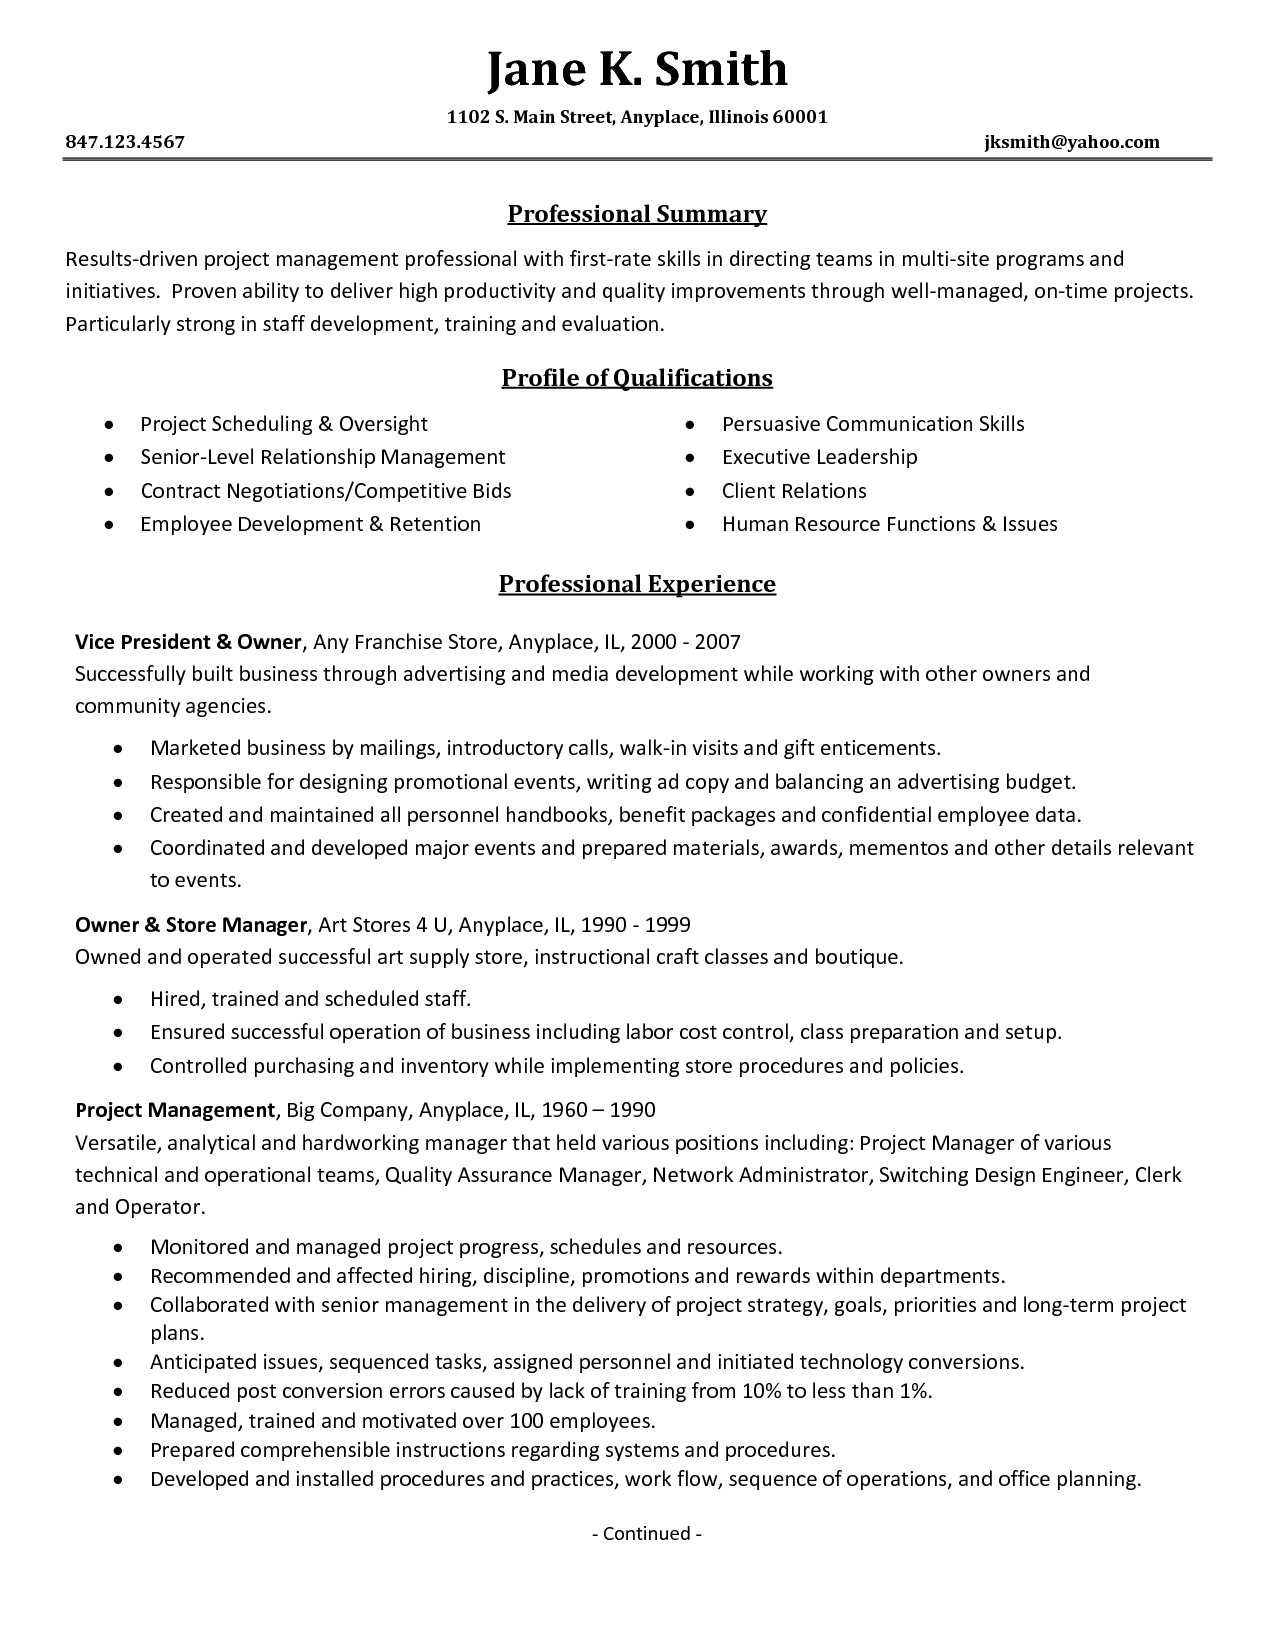 Resume Examples Skills New Leadership Skills Resume Leadership Skills Resume Template…  Job Design Inspiration